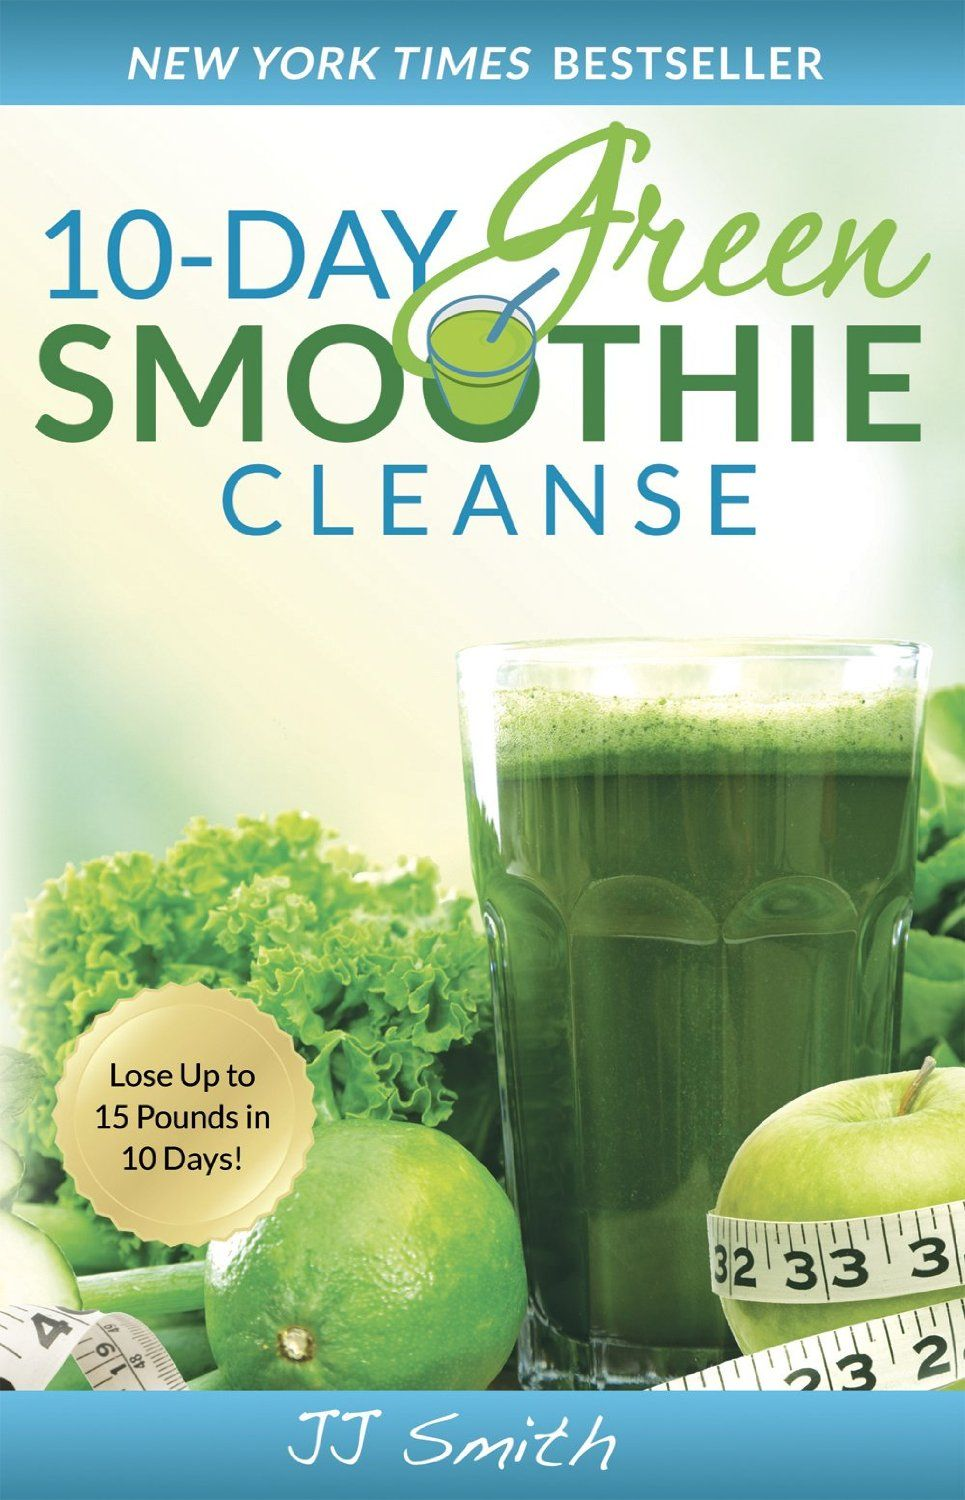 Amazon.com: 10-Day Green Smoothie Cleanse: Lose Up to 15 Pounds in 10 Days!  eBook: JJ Smith: Kindle Store